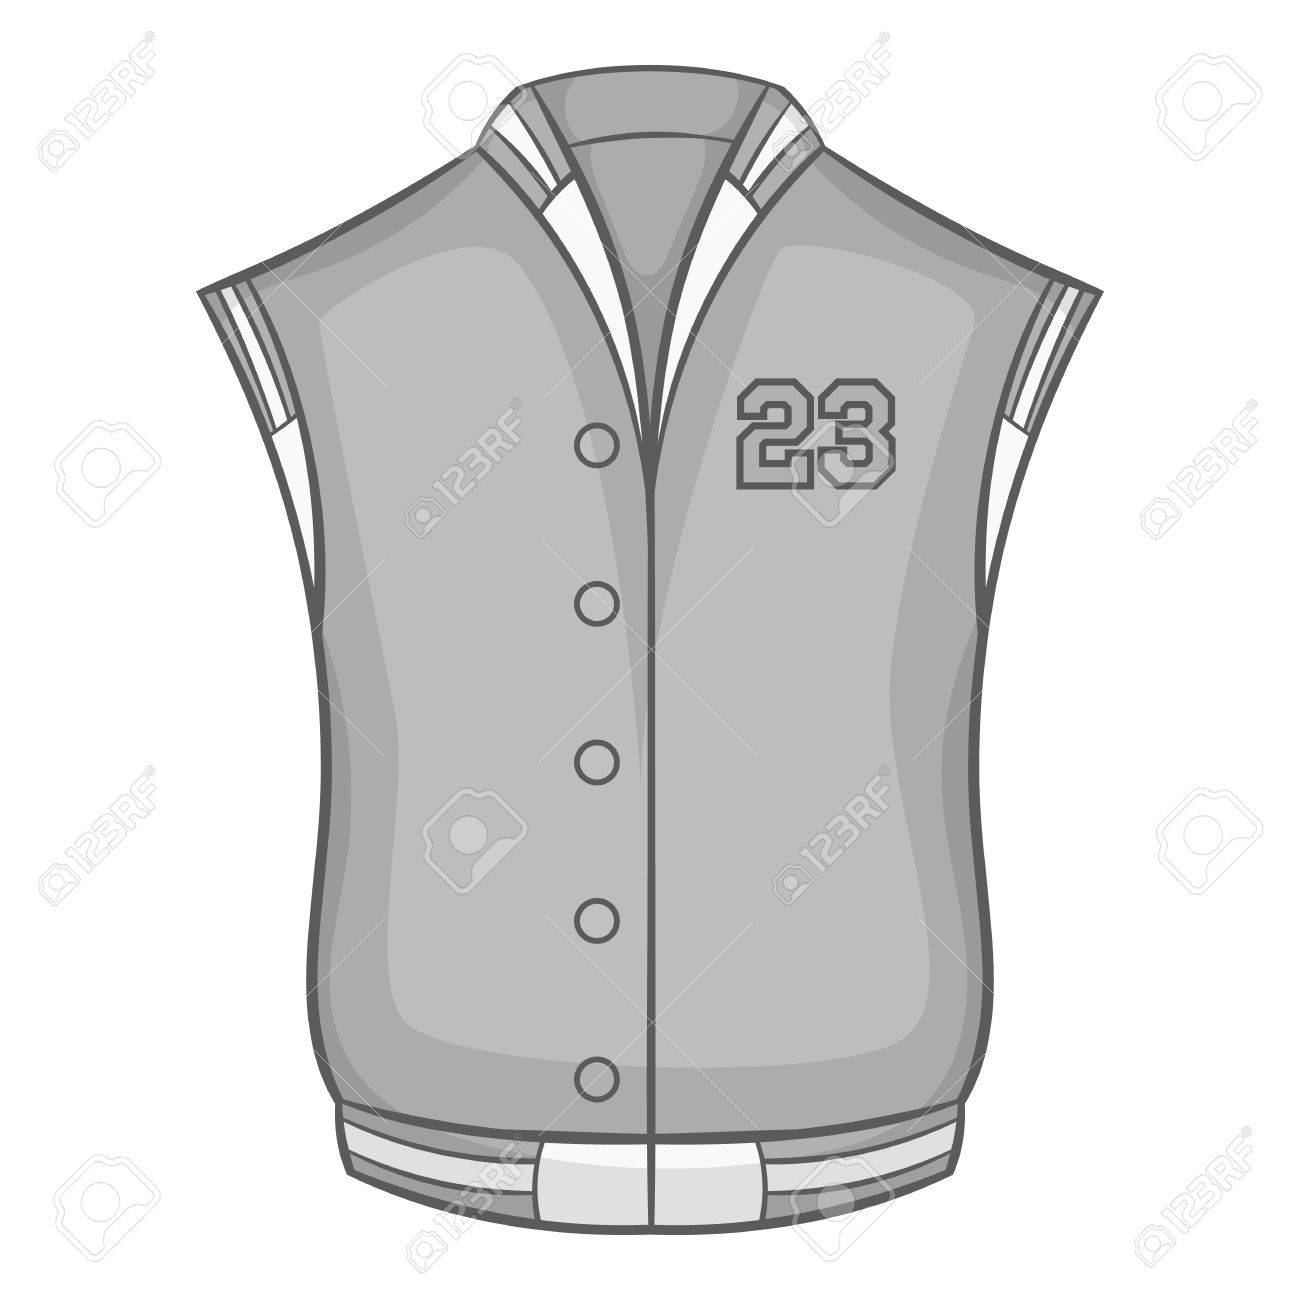 Sports vest icon in black monochrome style isolated on white background. Clothing symbol vector illustration - 62979111